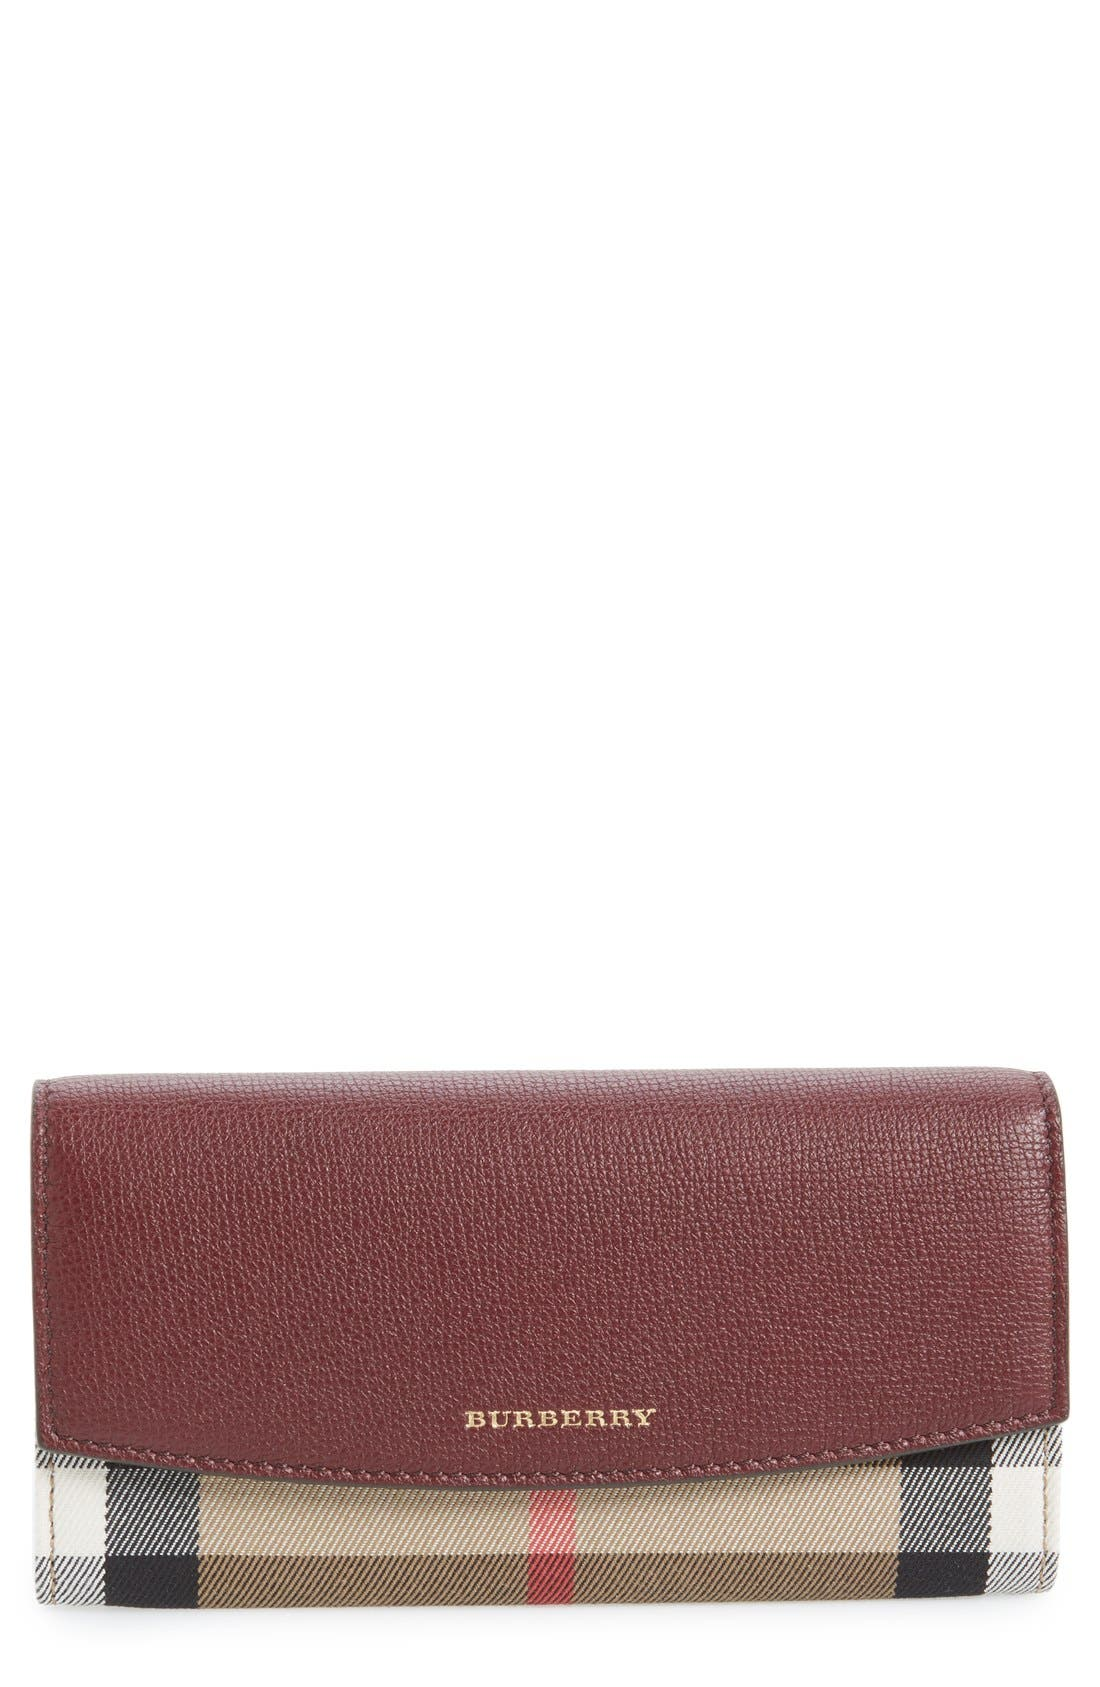 Main Image - Burberry 'Porter - Check' Continental Wallet